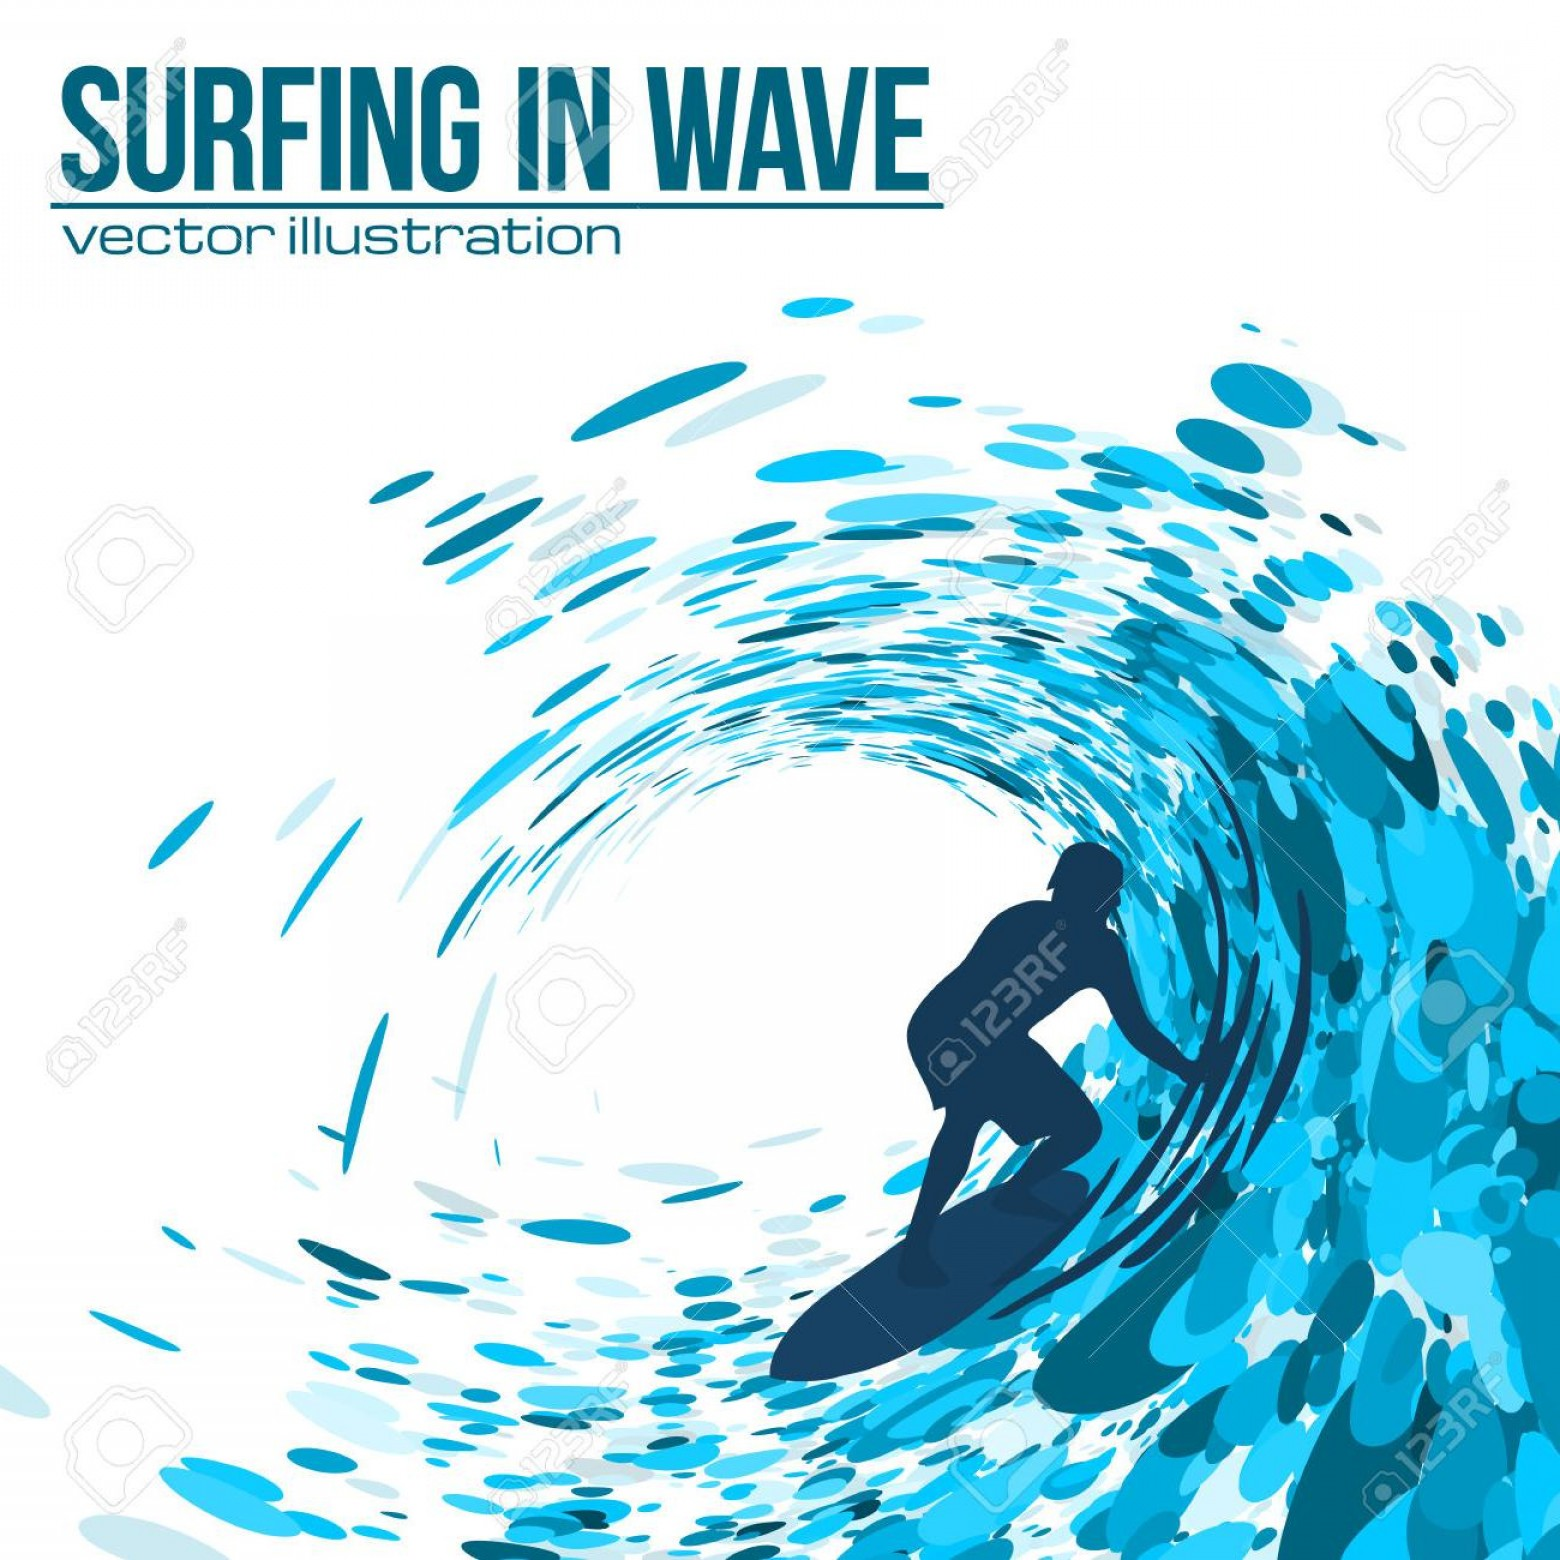 Waves With Surfer Silhouette Vector: Top Vector Surfer Silhouette In Blue Wave On White Background Stock Cdr